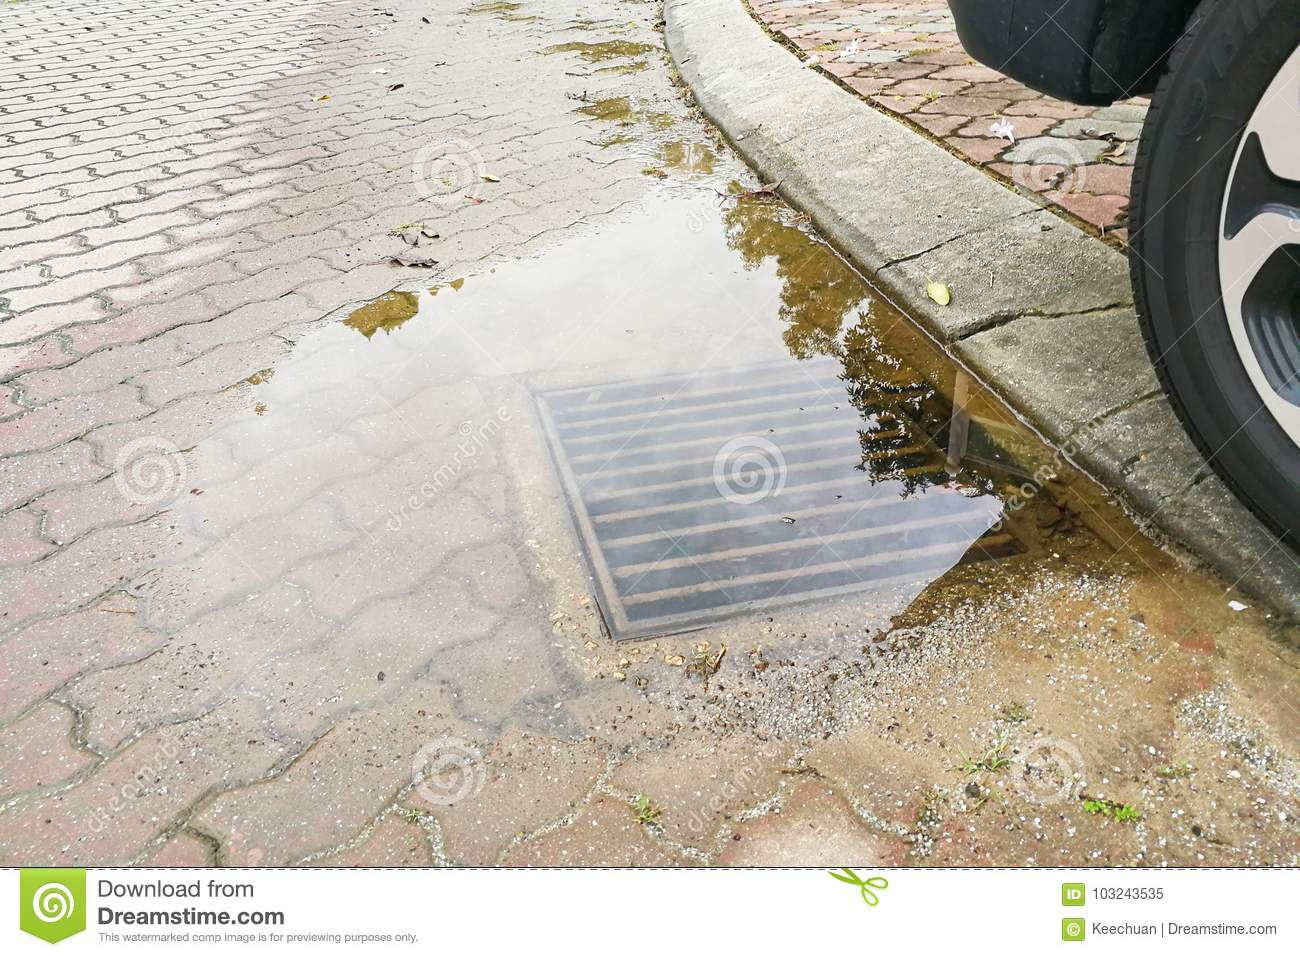 Waterlogged on street due to clogged drainage system